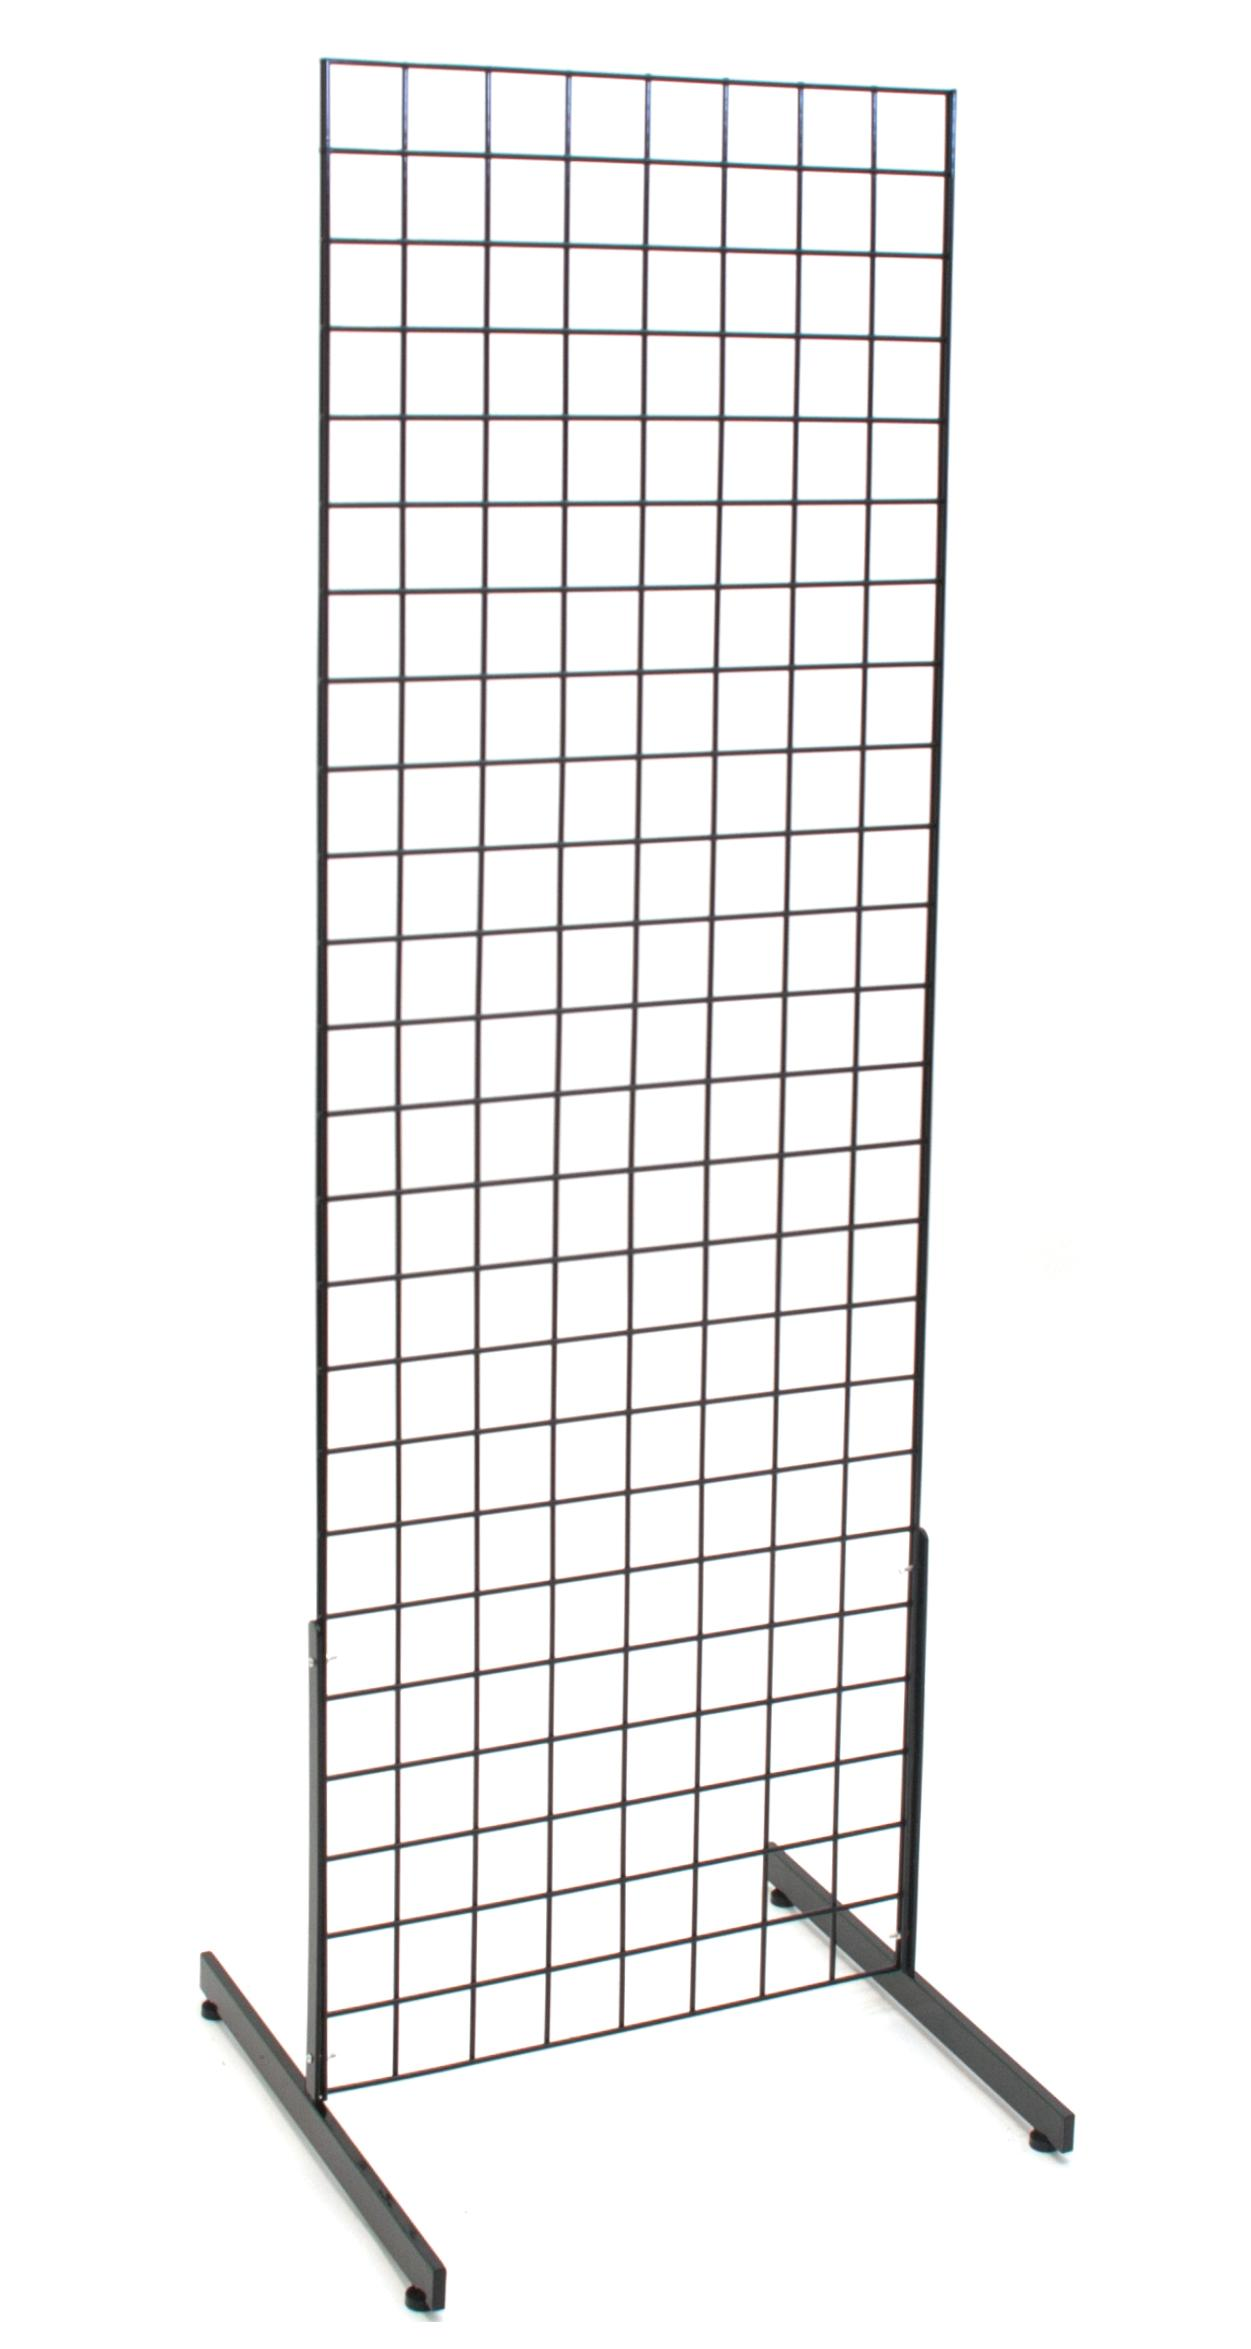 Amazon.com: KC Store Fixtures 05351 Grid Unit, 2\' x 6\' with Legs ...